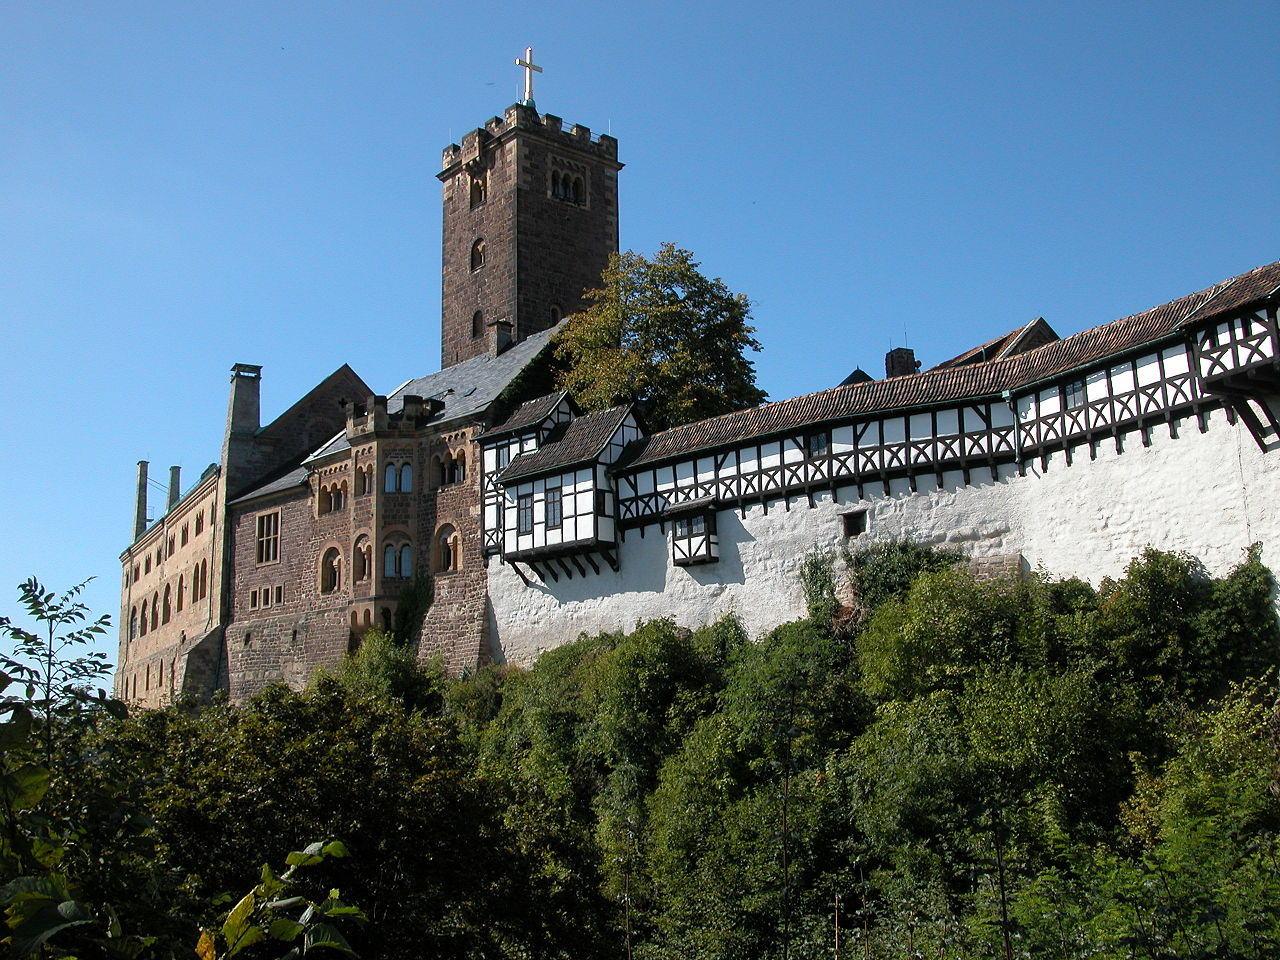 Wartburg Castle in Eisenach, Germany (photo: Robert Scarth, Wikimedia license CC BY-SA 2.0)